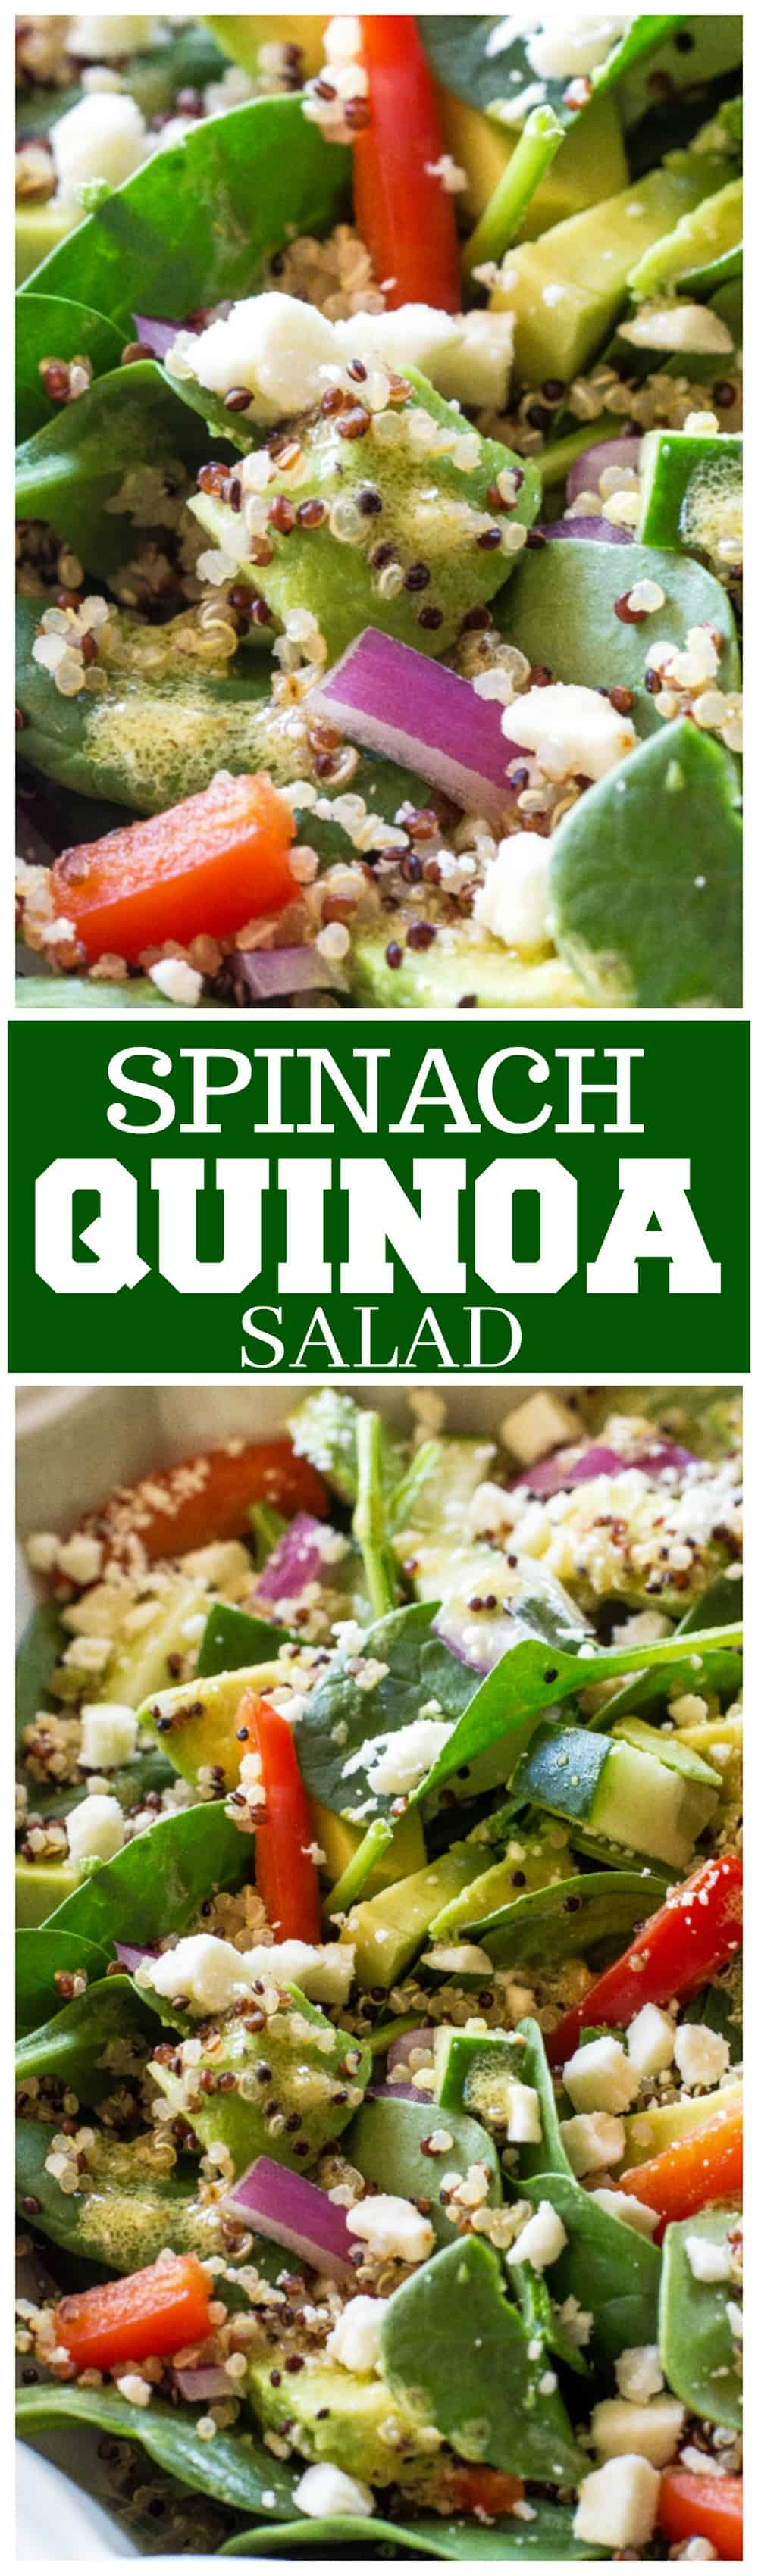 Spinach Quinoa Salad - full of rich healthy foods like cucumber, red bell pepper, avocado, and onion. This recipe is topped with a lemon dijon vinaigrette. #healthy #spinach #quinoa #salad #recipe